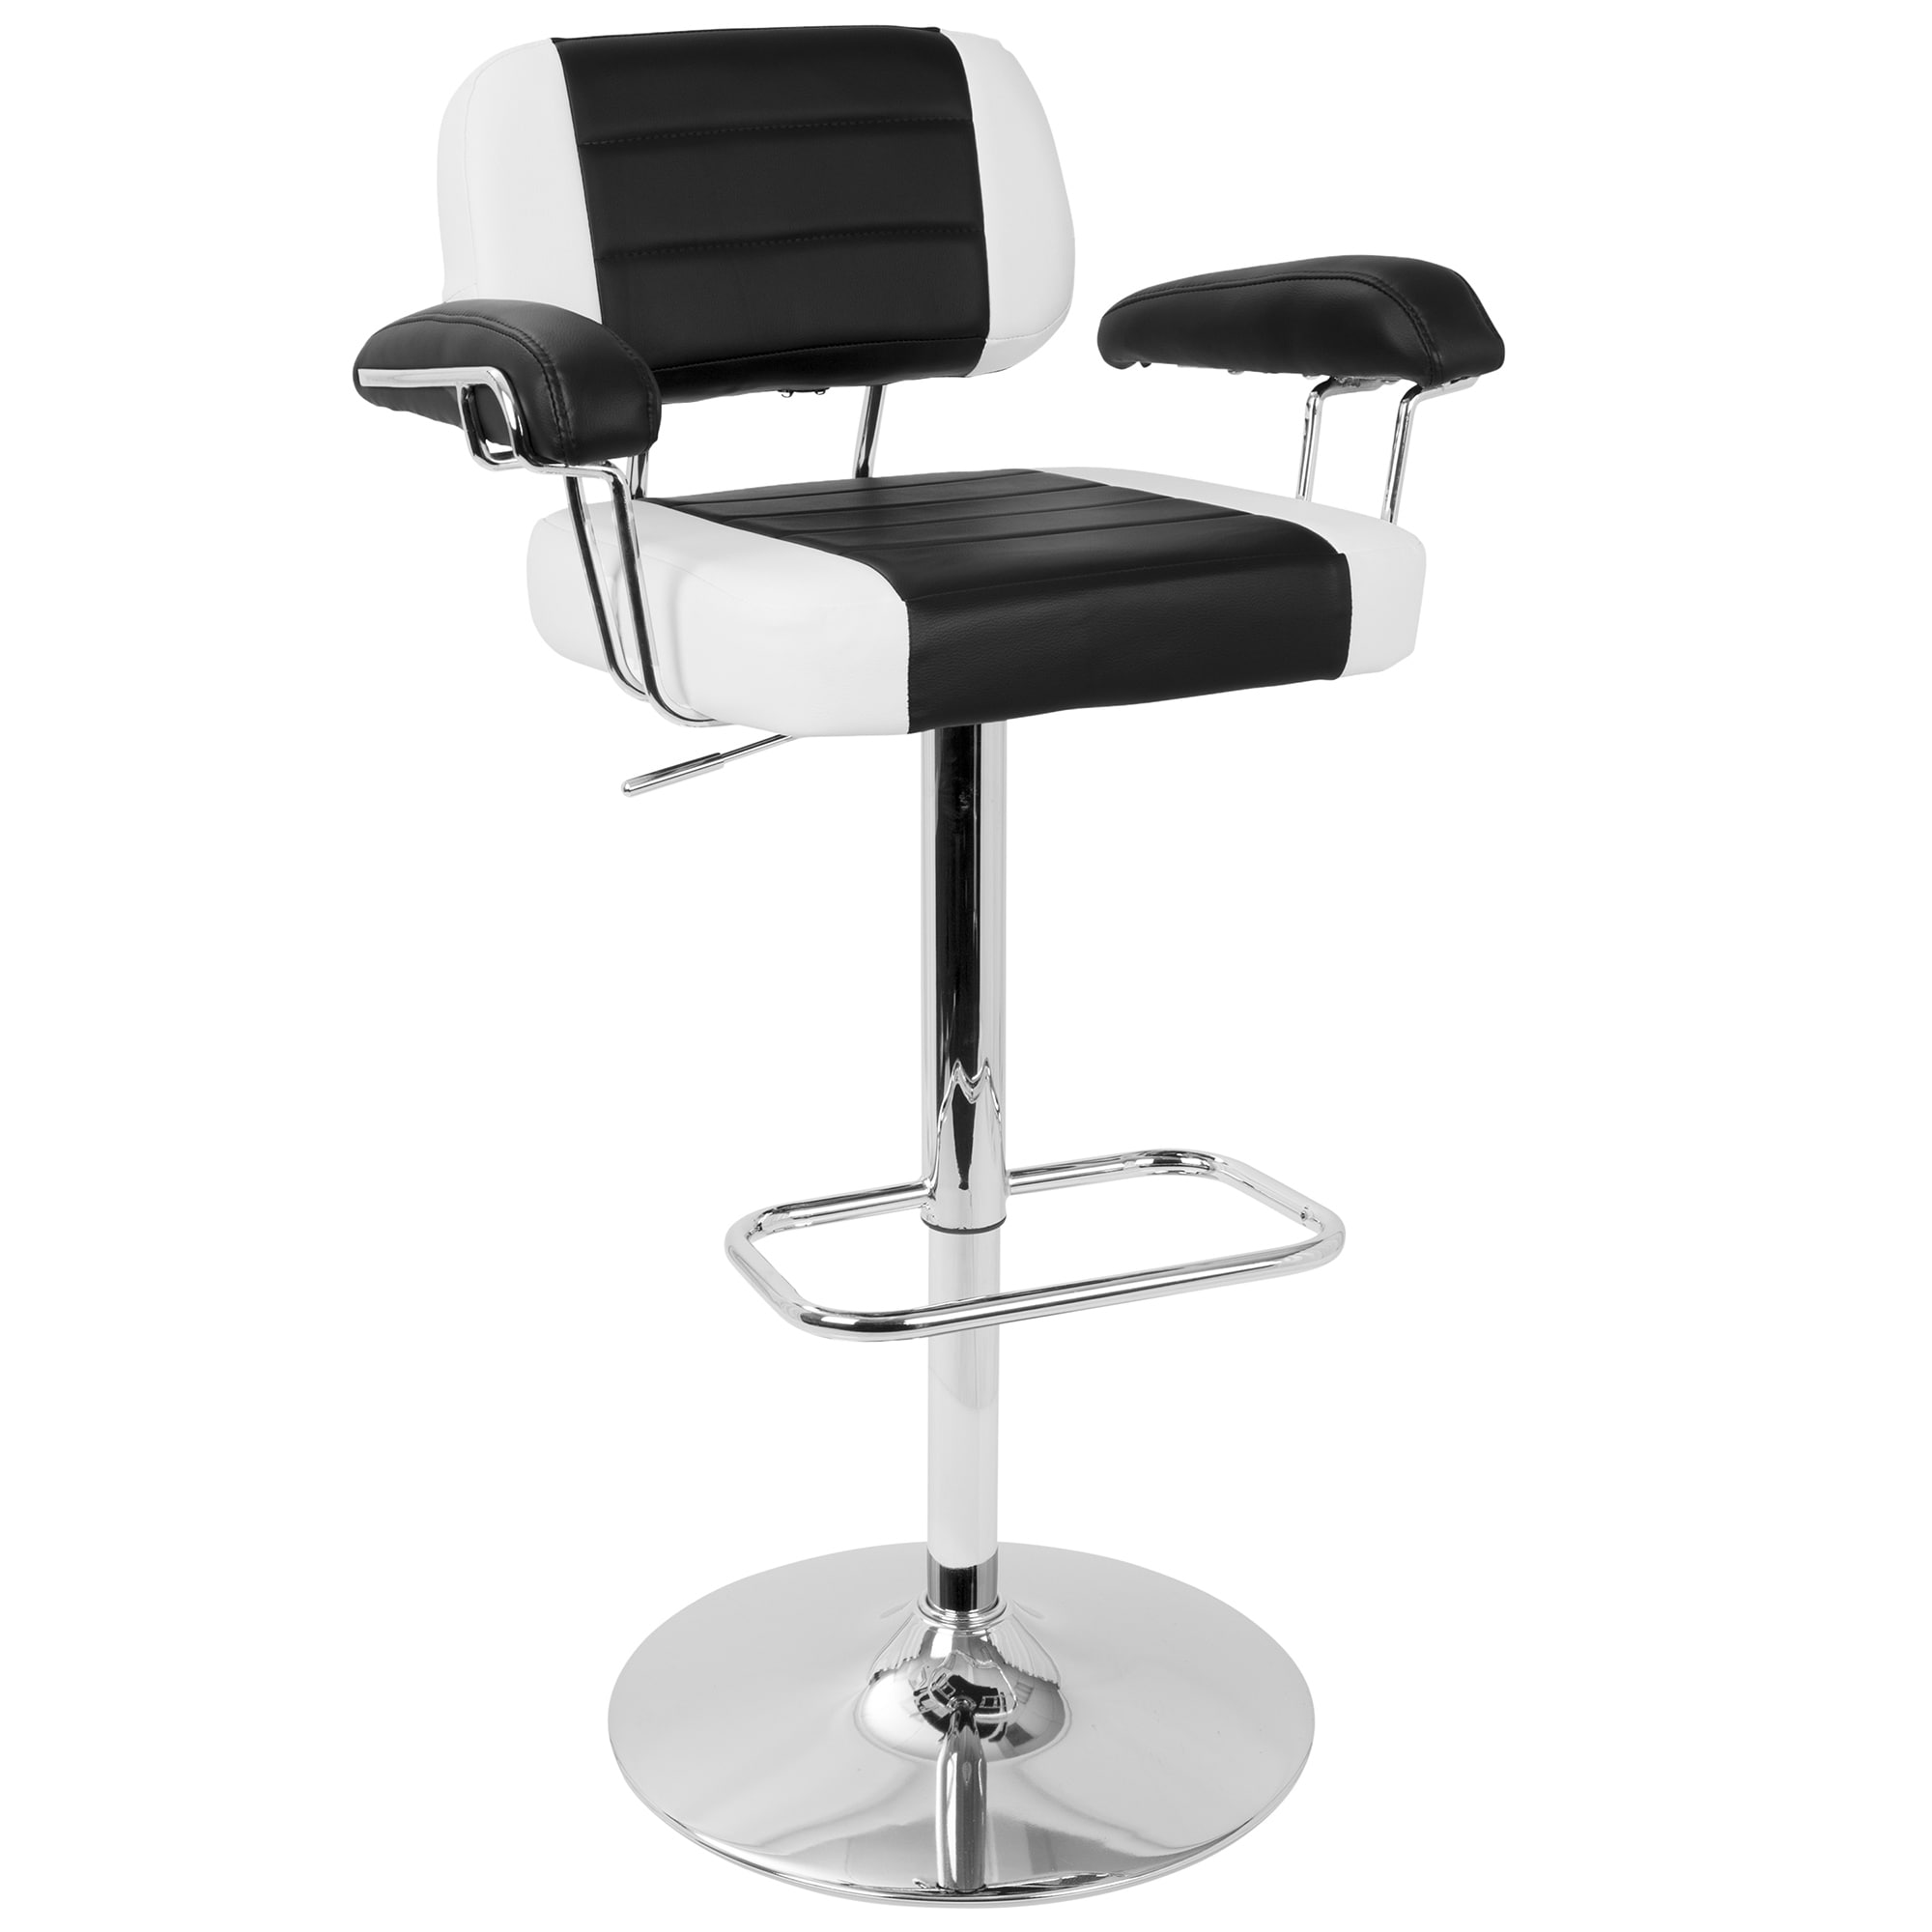 Shop cruiser adjustable retro bar stool in black and white free shipping today overstock com 14475777